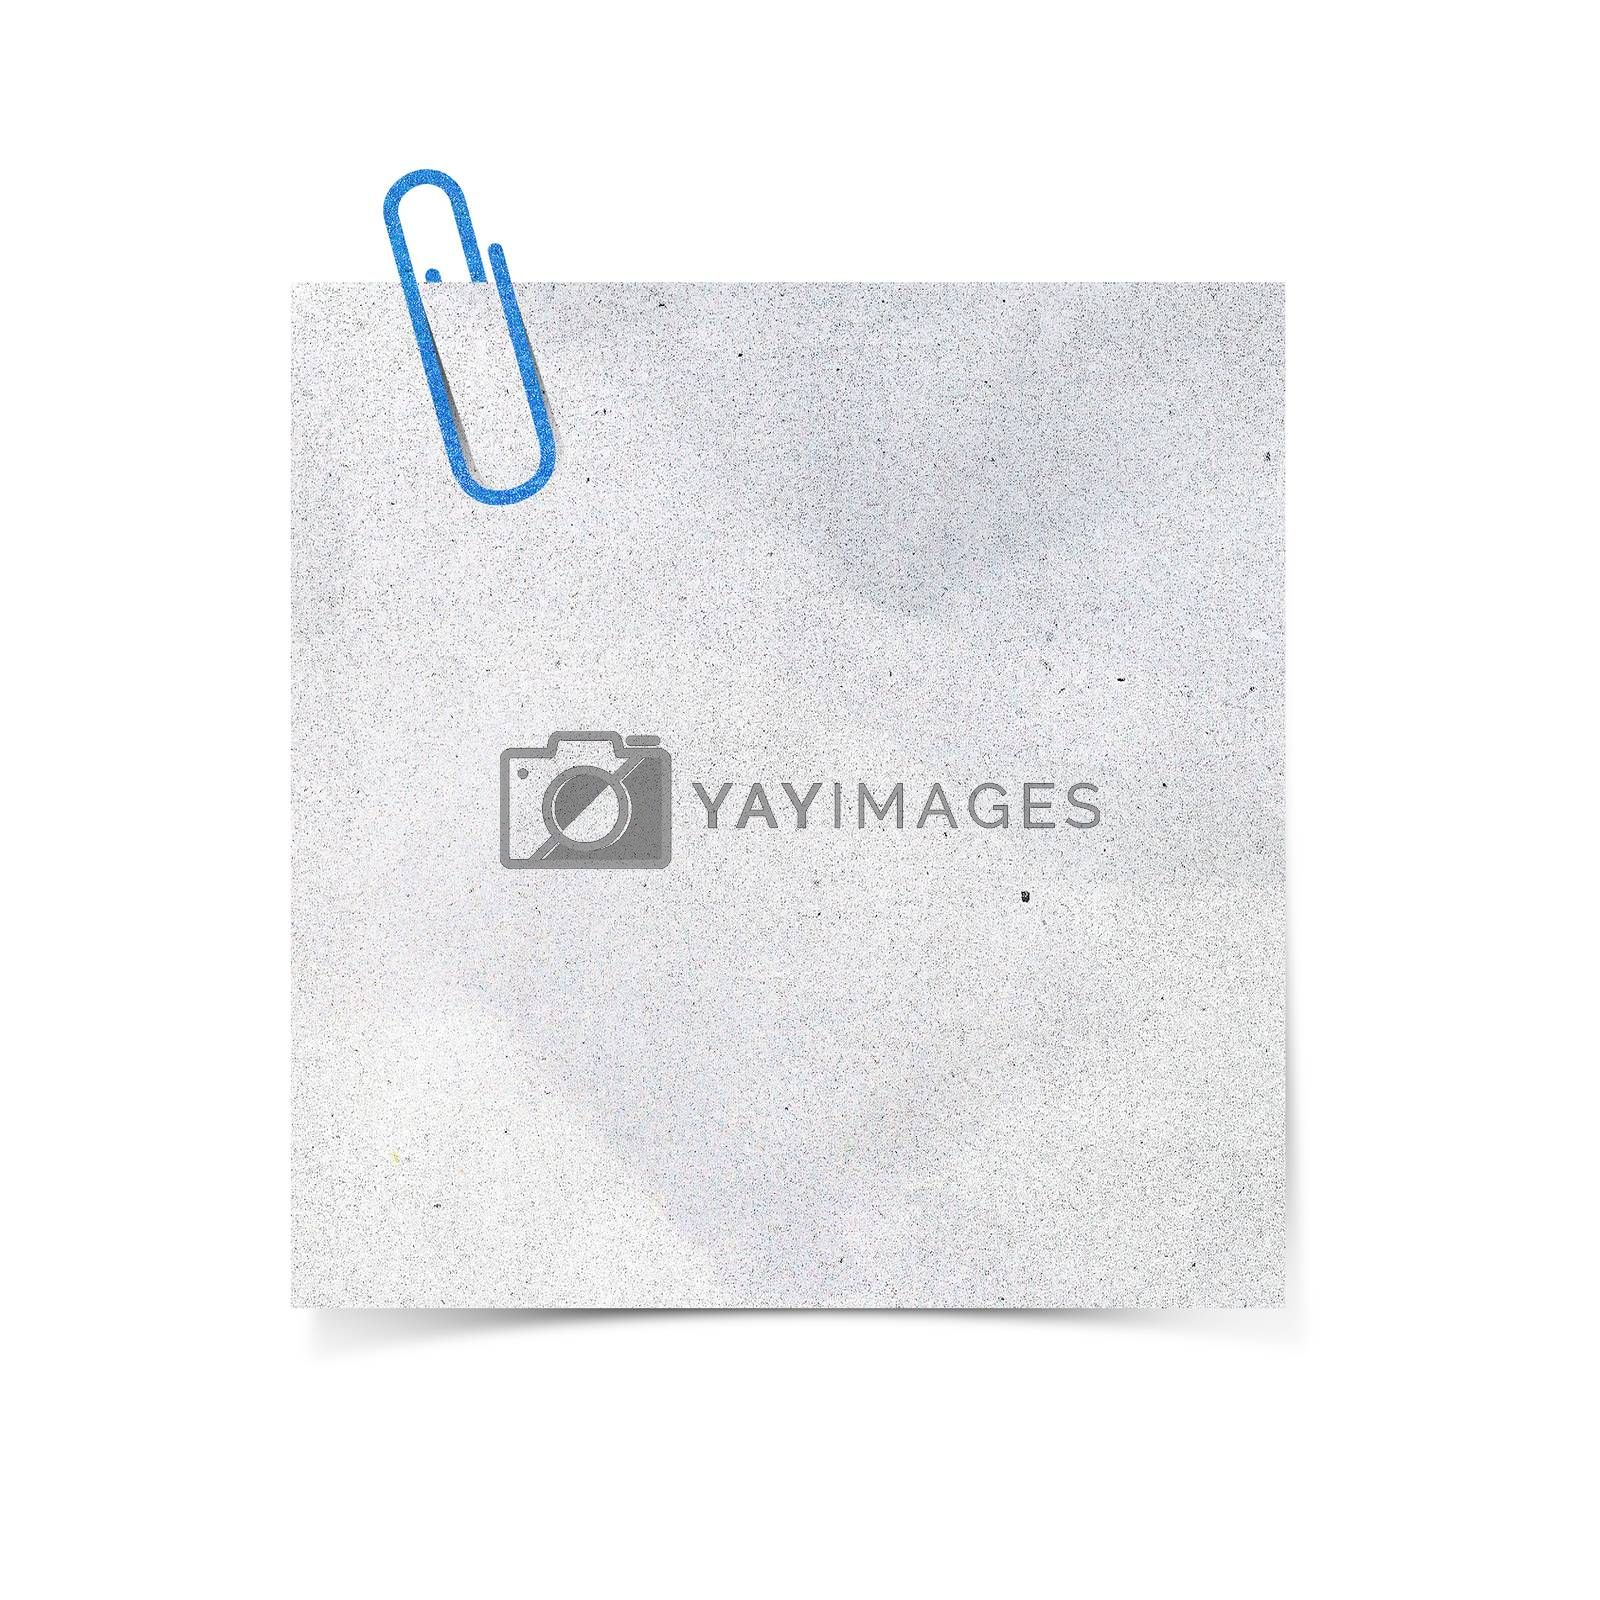 Paper clip and paper on white background by jakgree